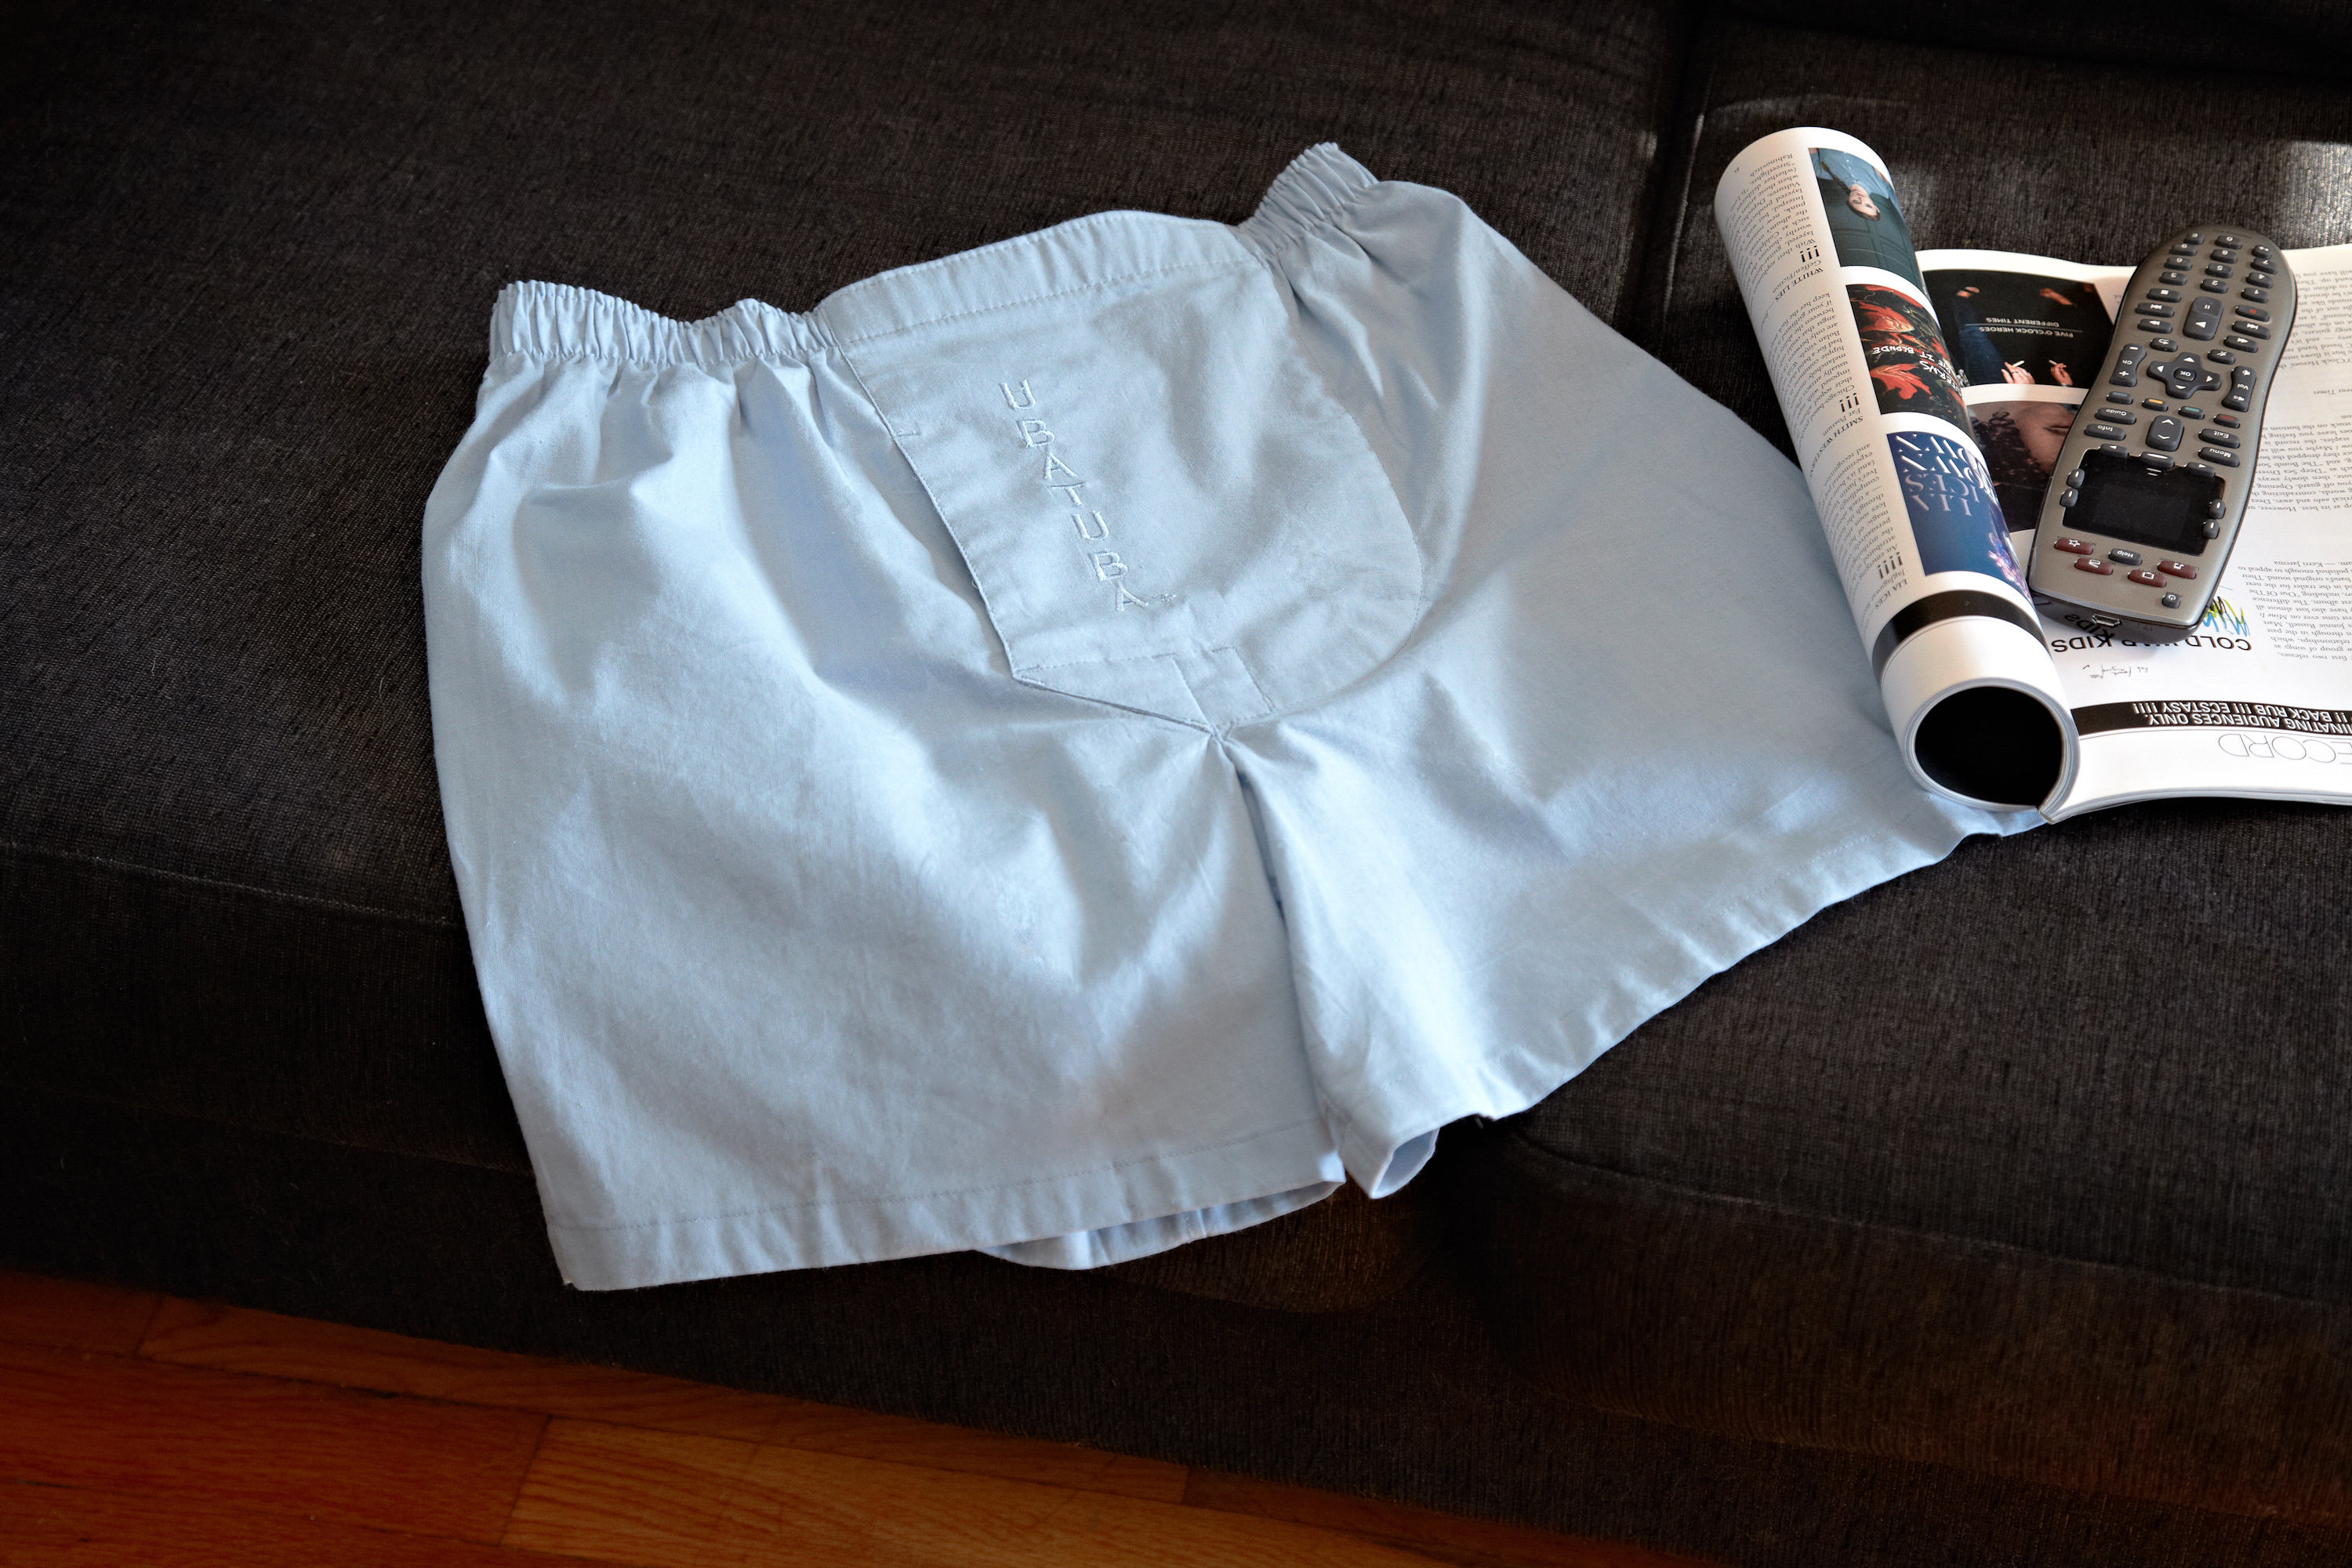 ubatuba-boxer-shorts-white-on-sofa.jpg